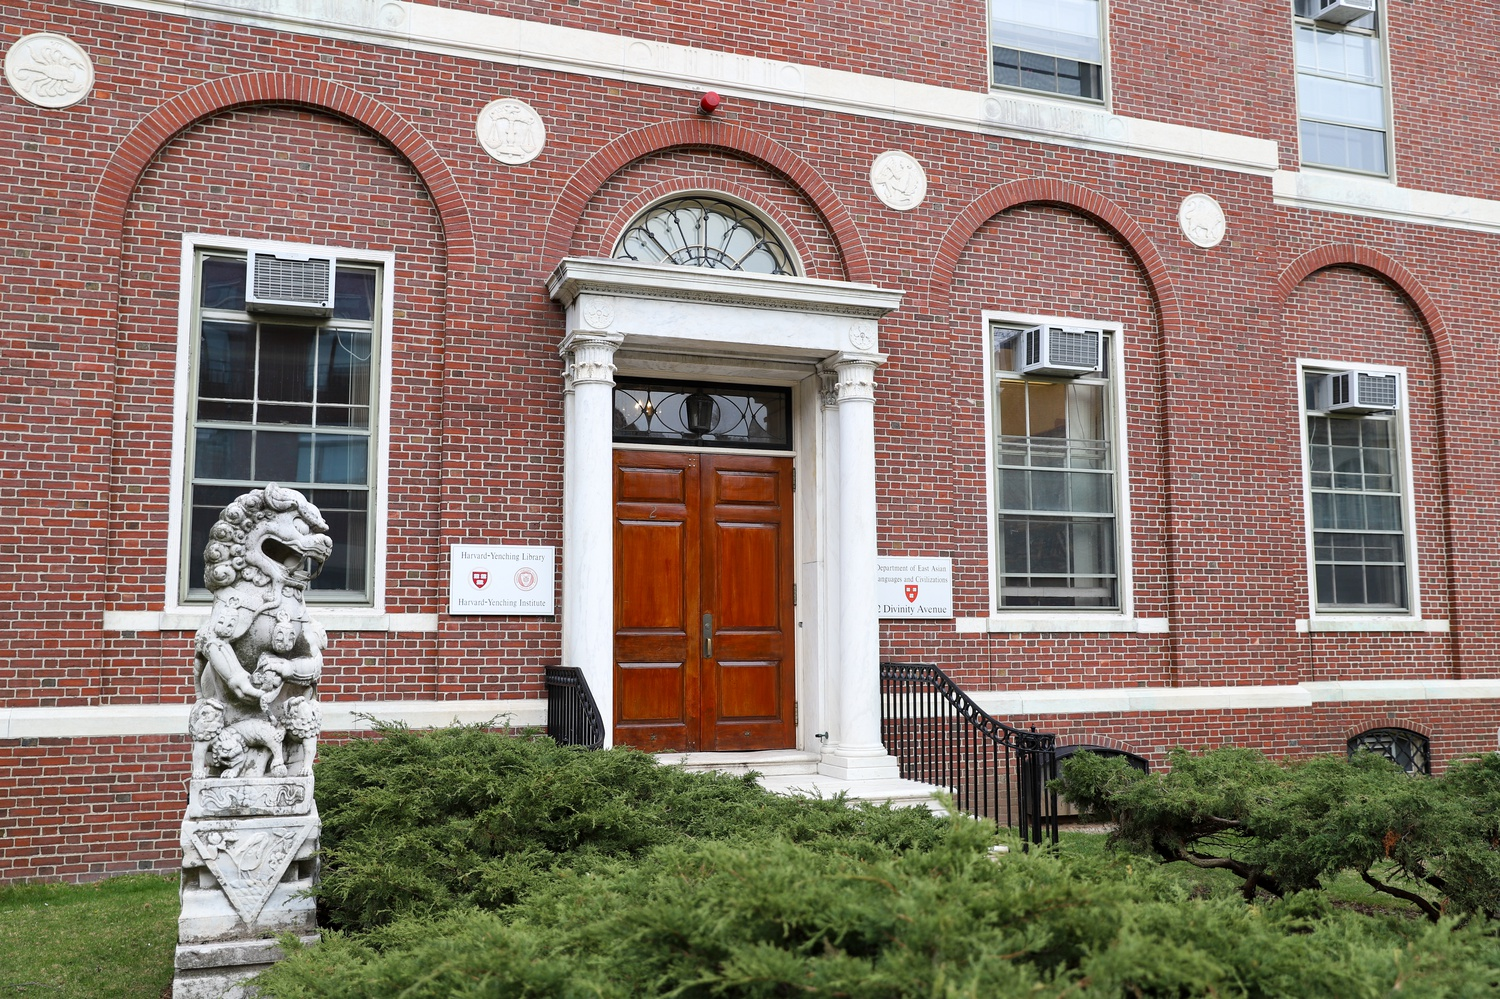 Harvard's East Asian Languages and Civilizations department is based on Divinity Avenue.